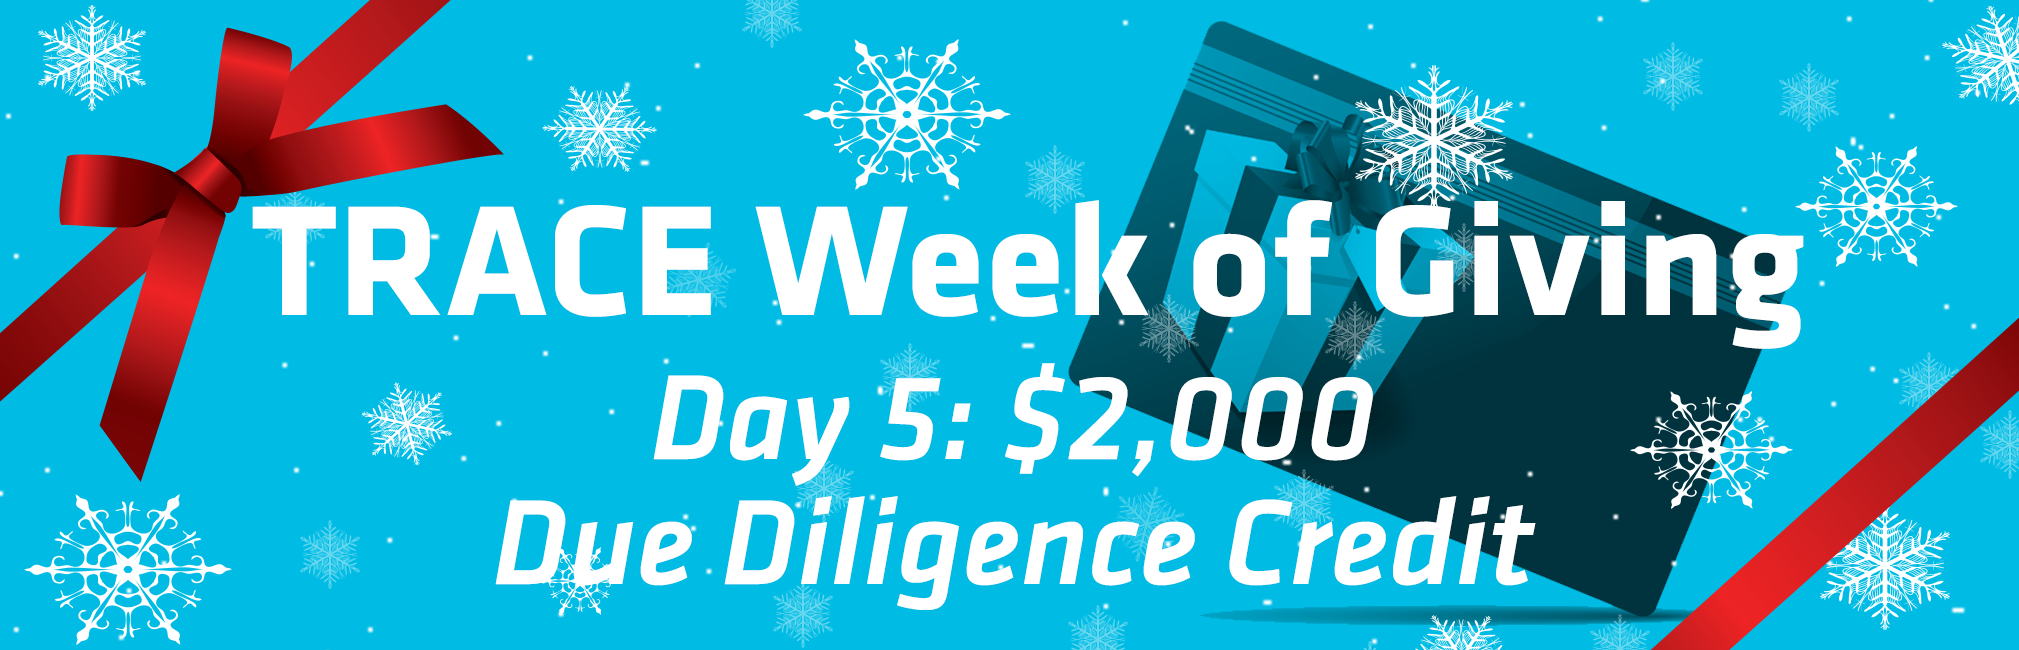 TRACE-week-of-giving-email-banner-day5